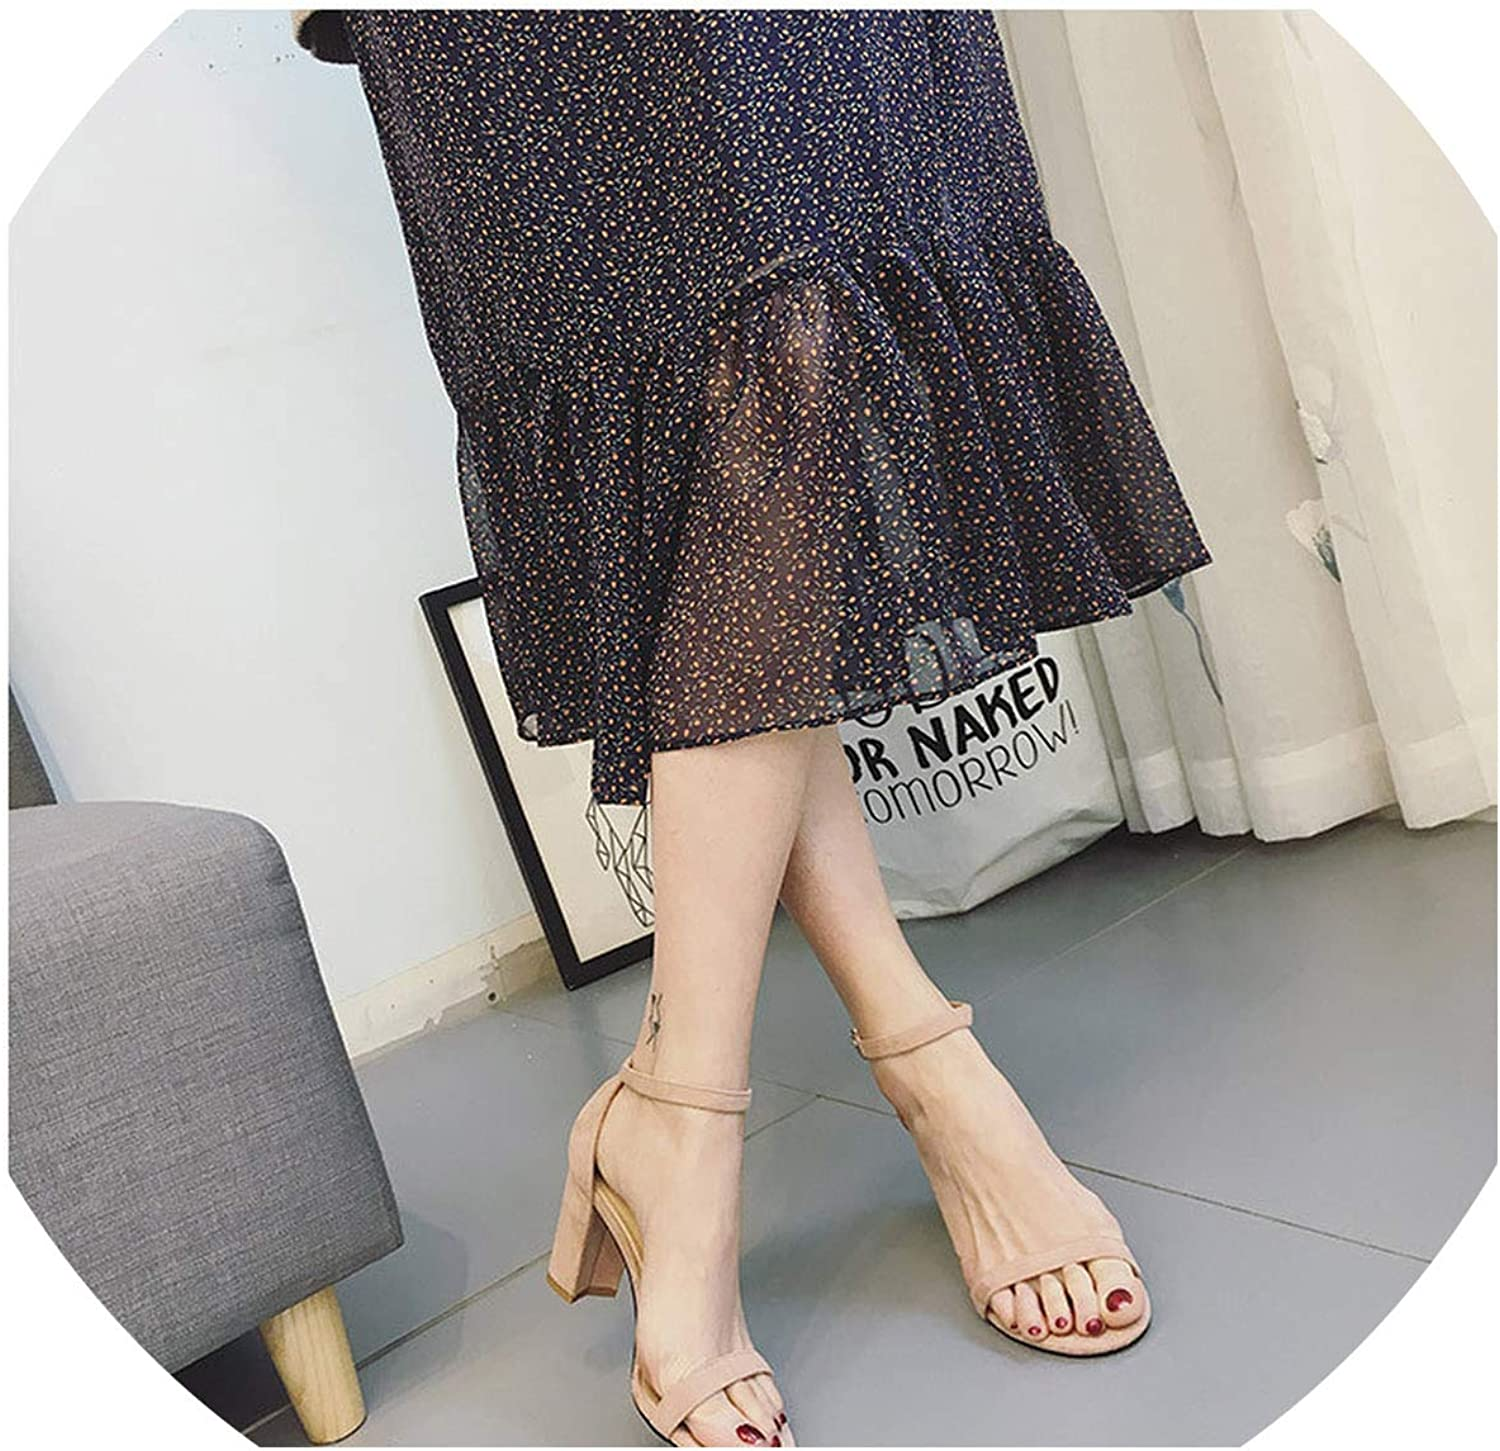 Chunky Heel Women Ankle Strap Gladiator Sandals Women's Summer shoes Fashion Female Sandilas Cover Heel Flock Party shoes M673